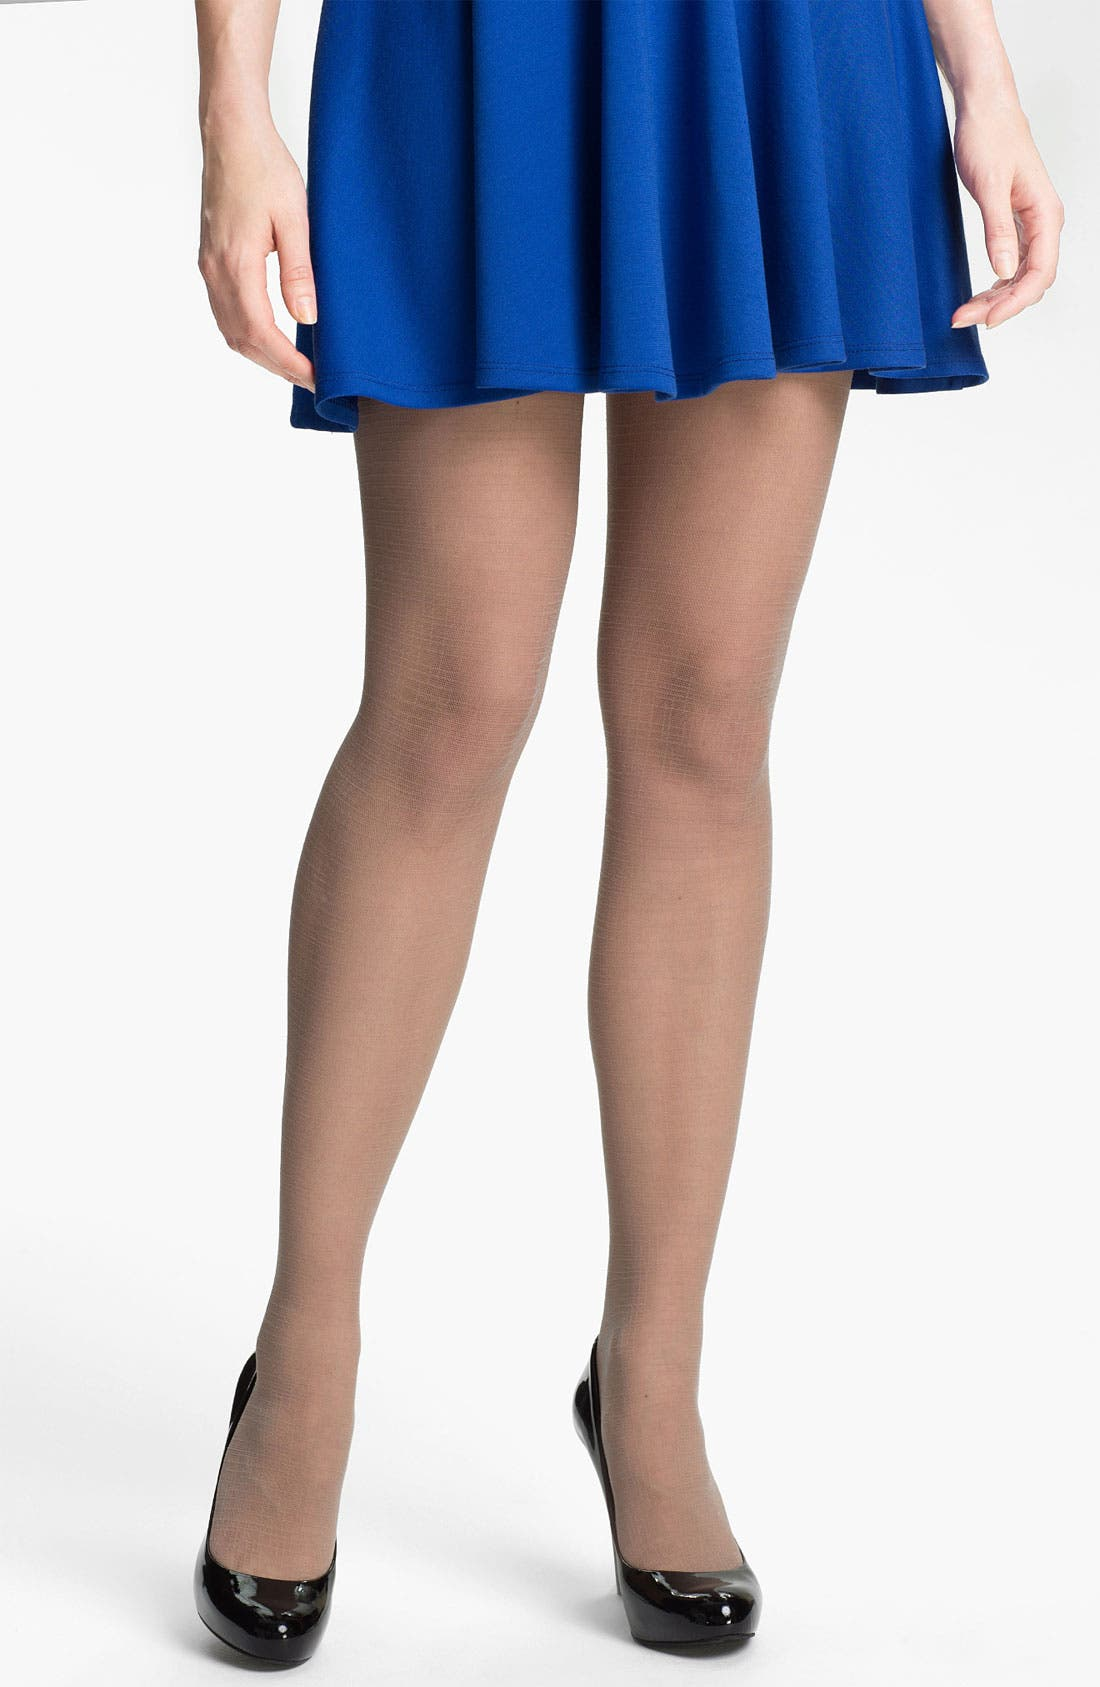 Main Image - Nordstrom 'Check It Out' Tights